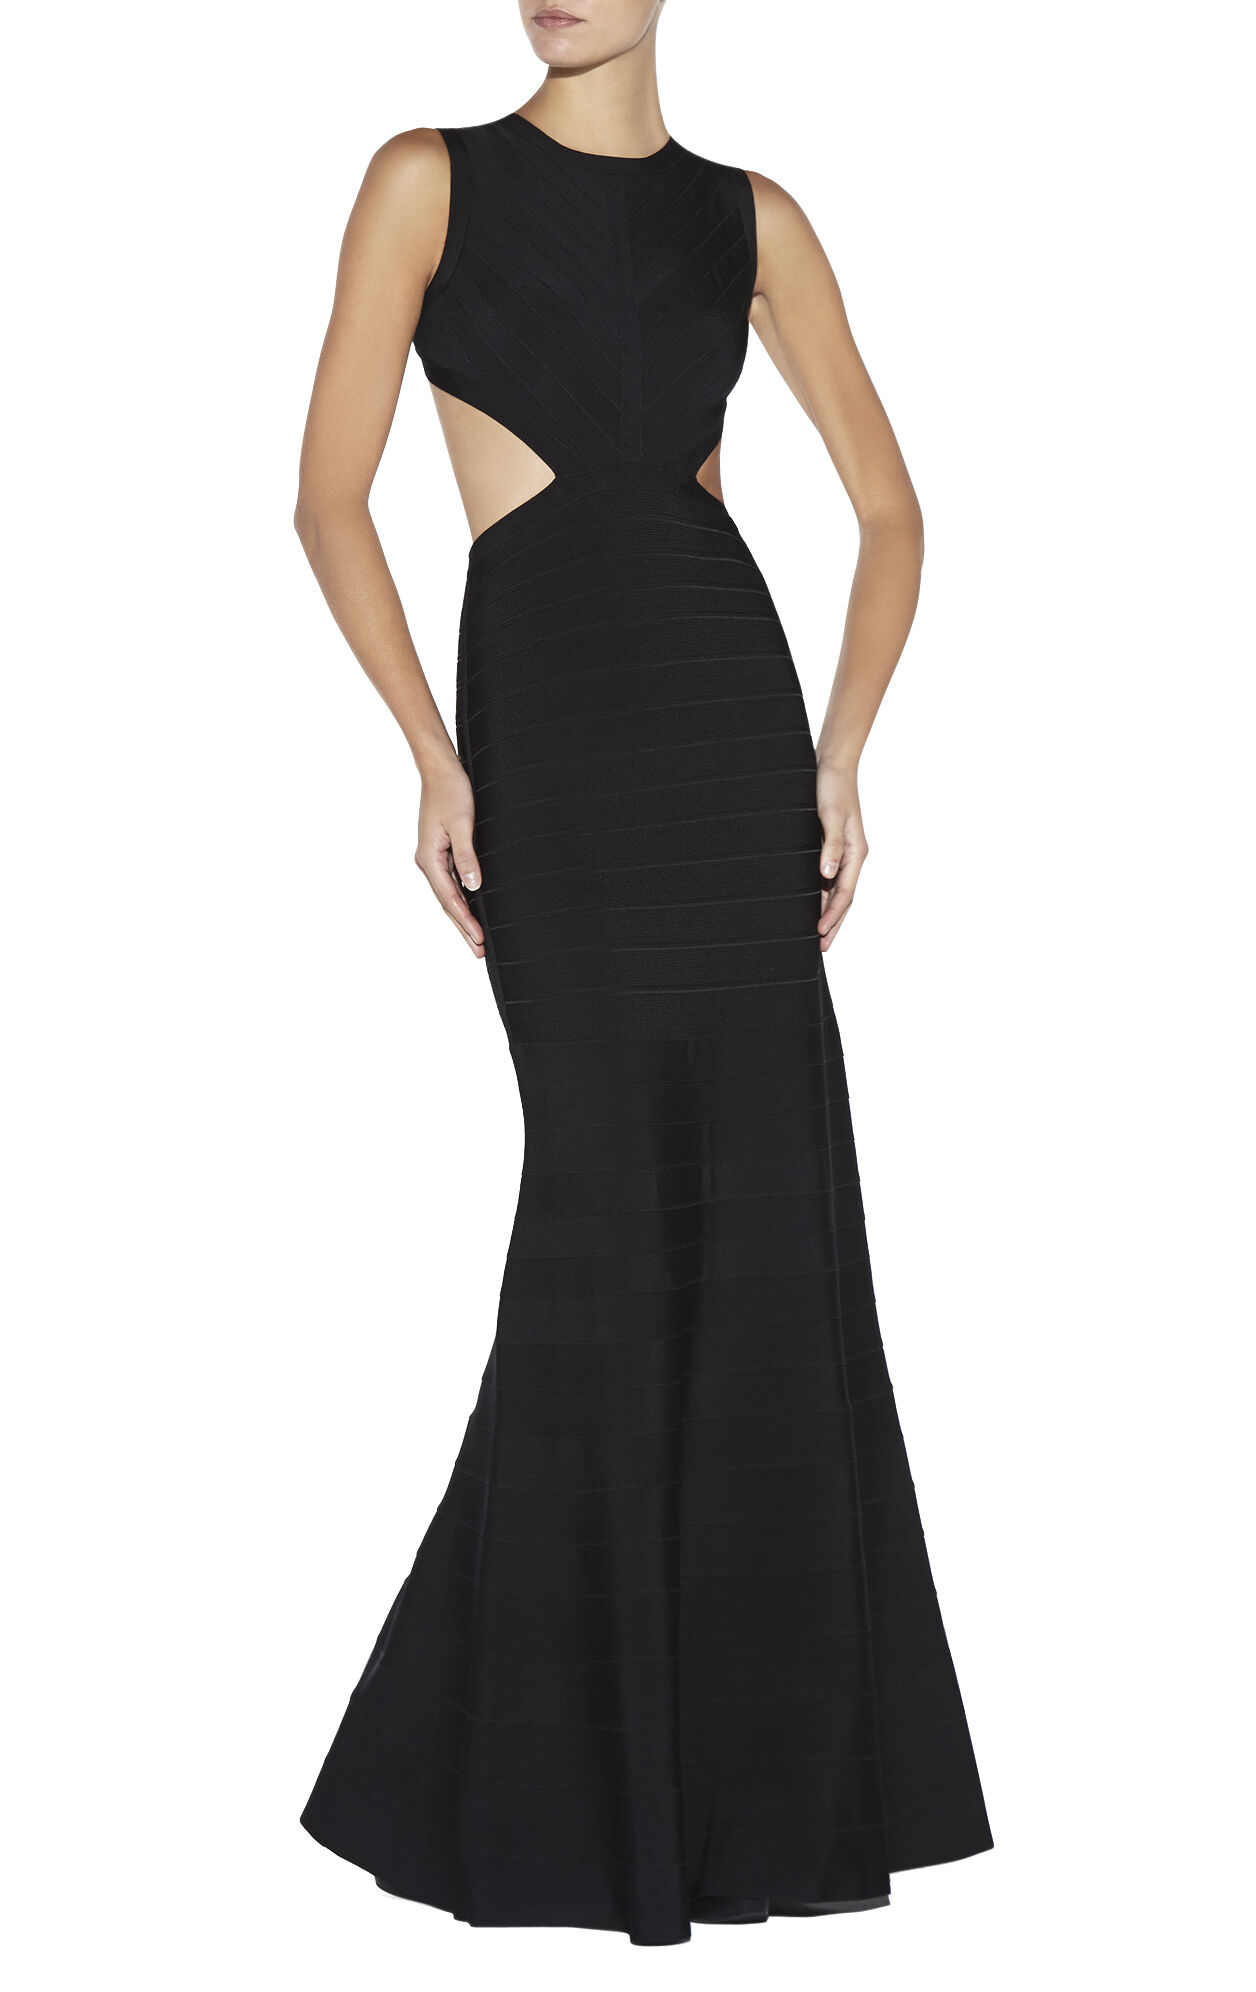 Cassandra Signature Essentials Bandage Gown